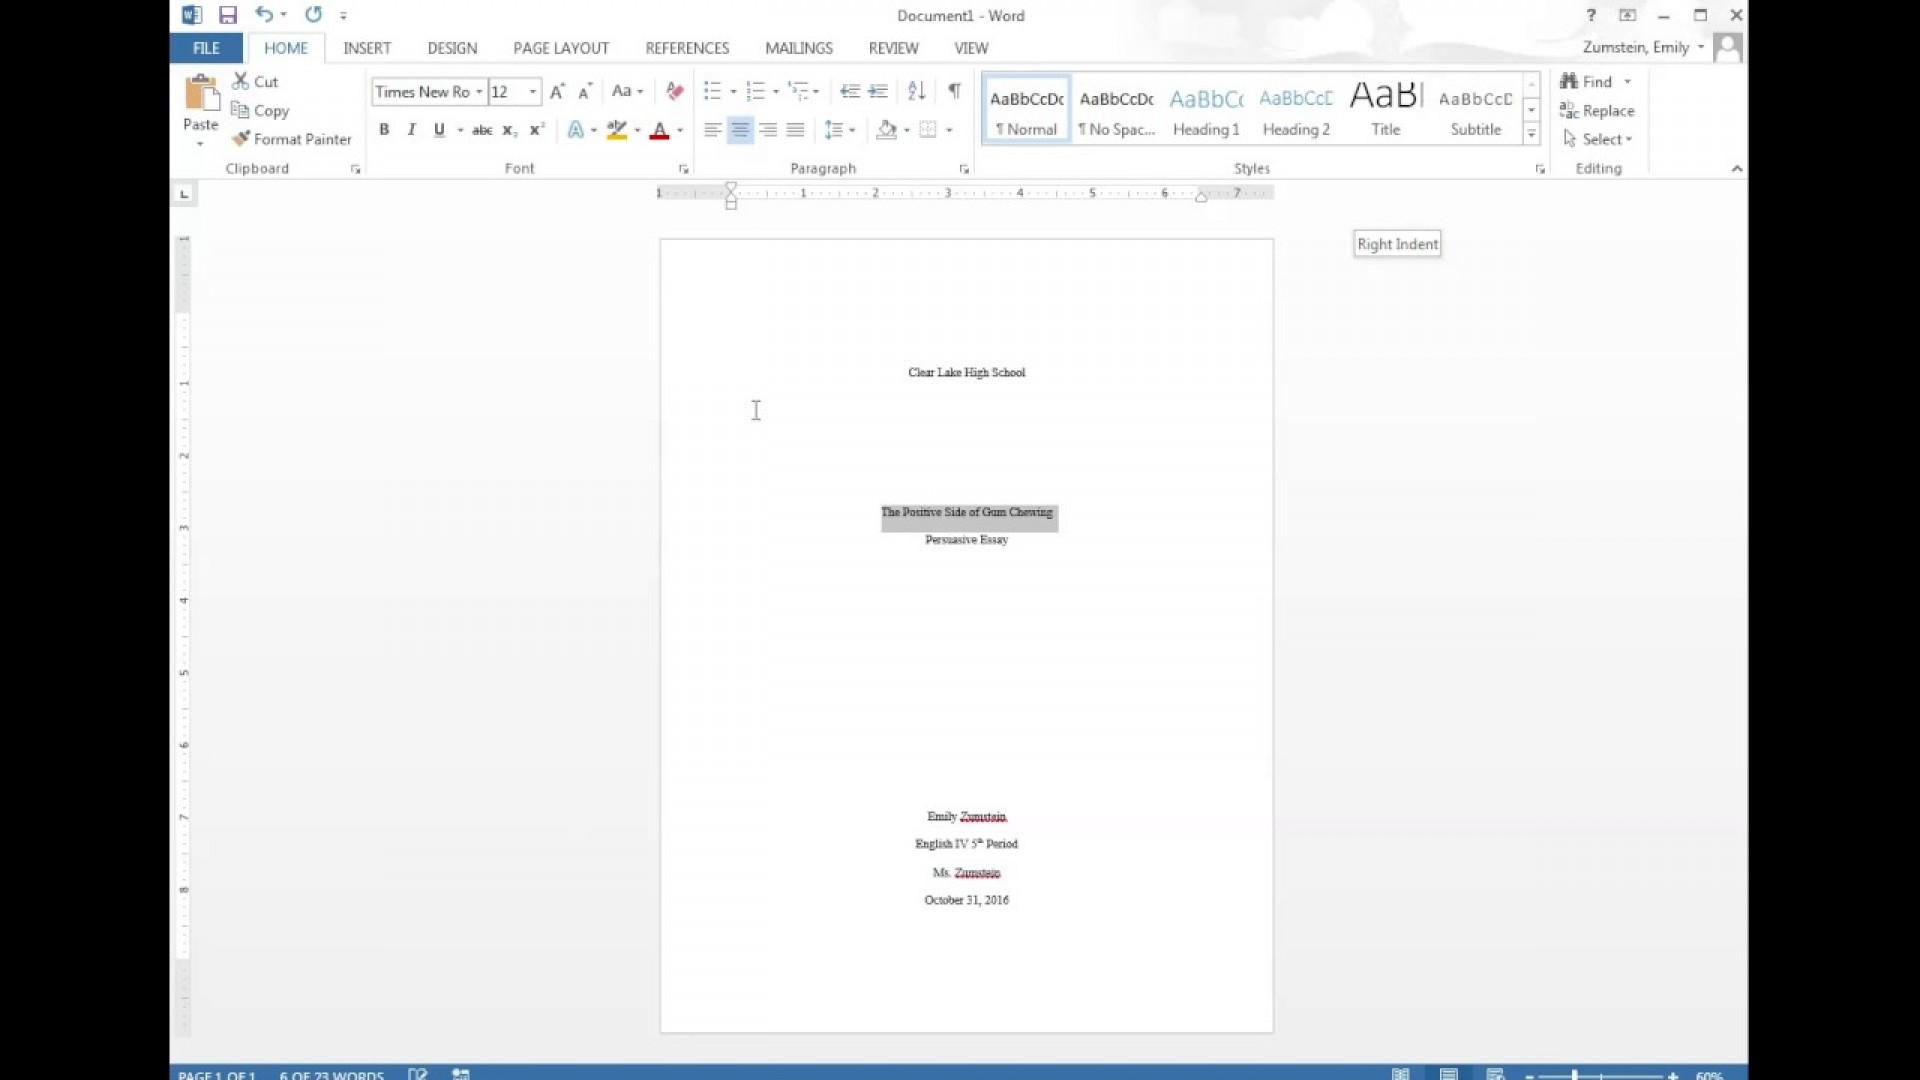 007 Maxresdefault Research Paper Mla Format Cover Singular Page Style Title Example With 1920